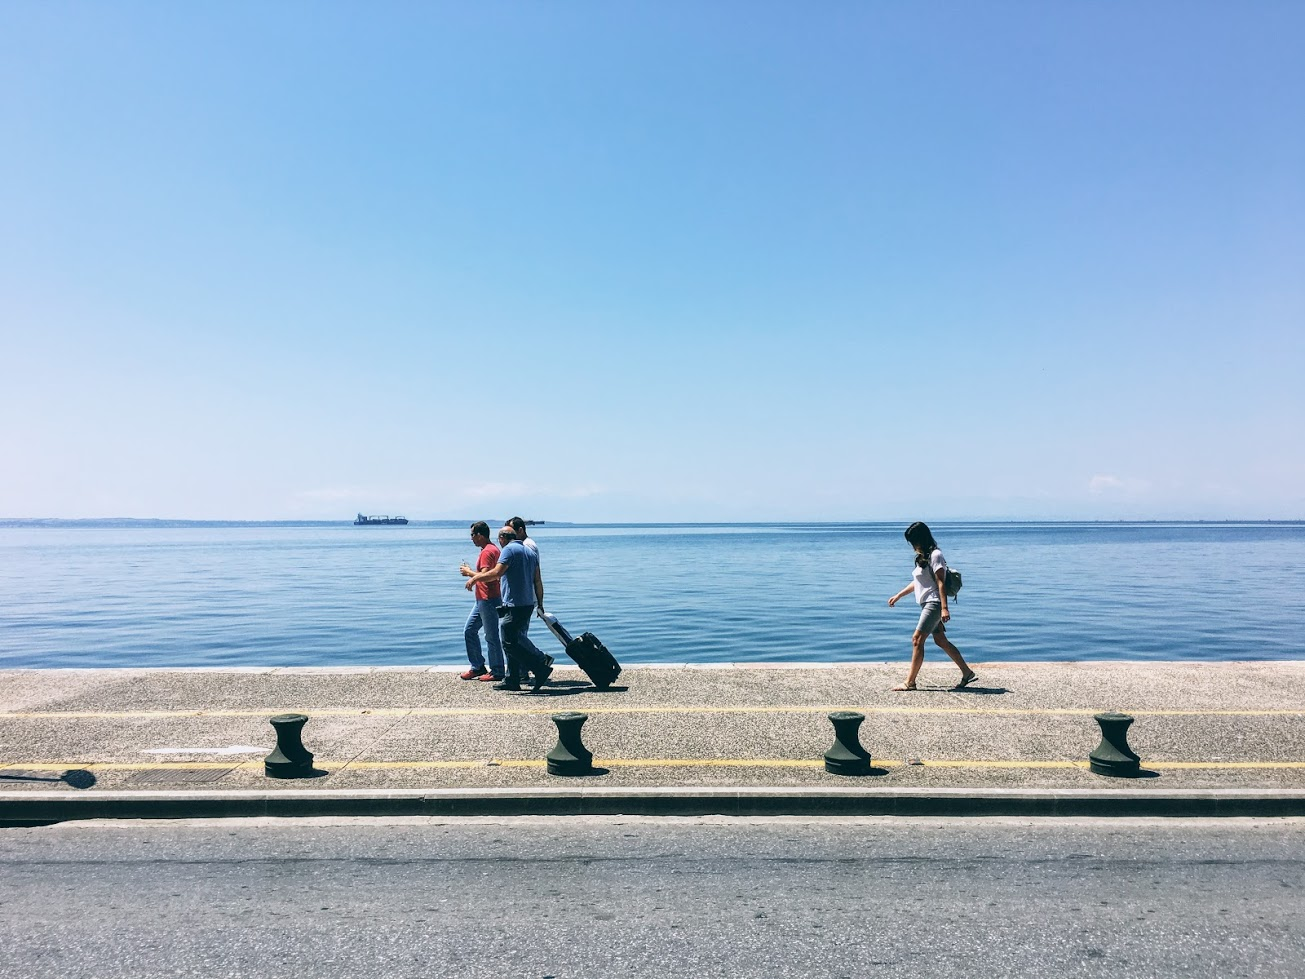 Thessaloniki - Melting pot for food and arts